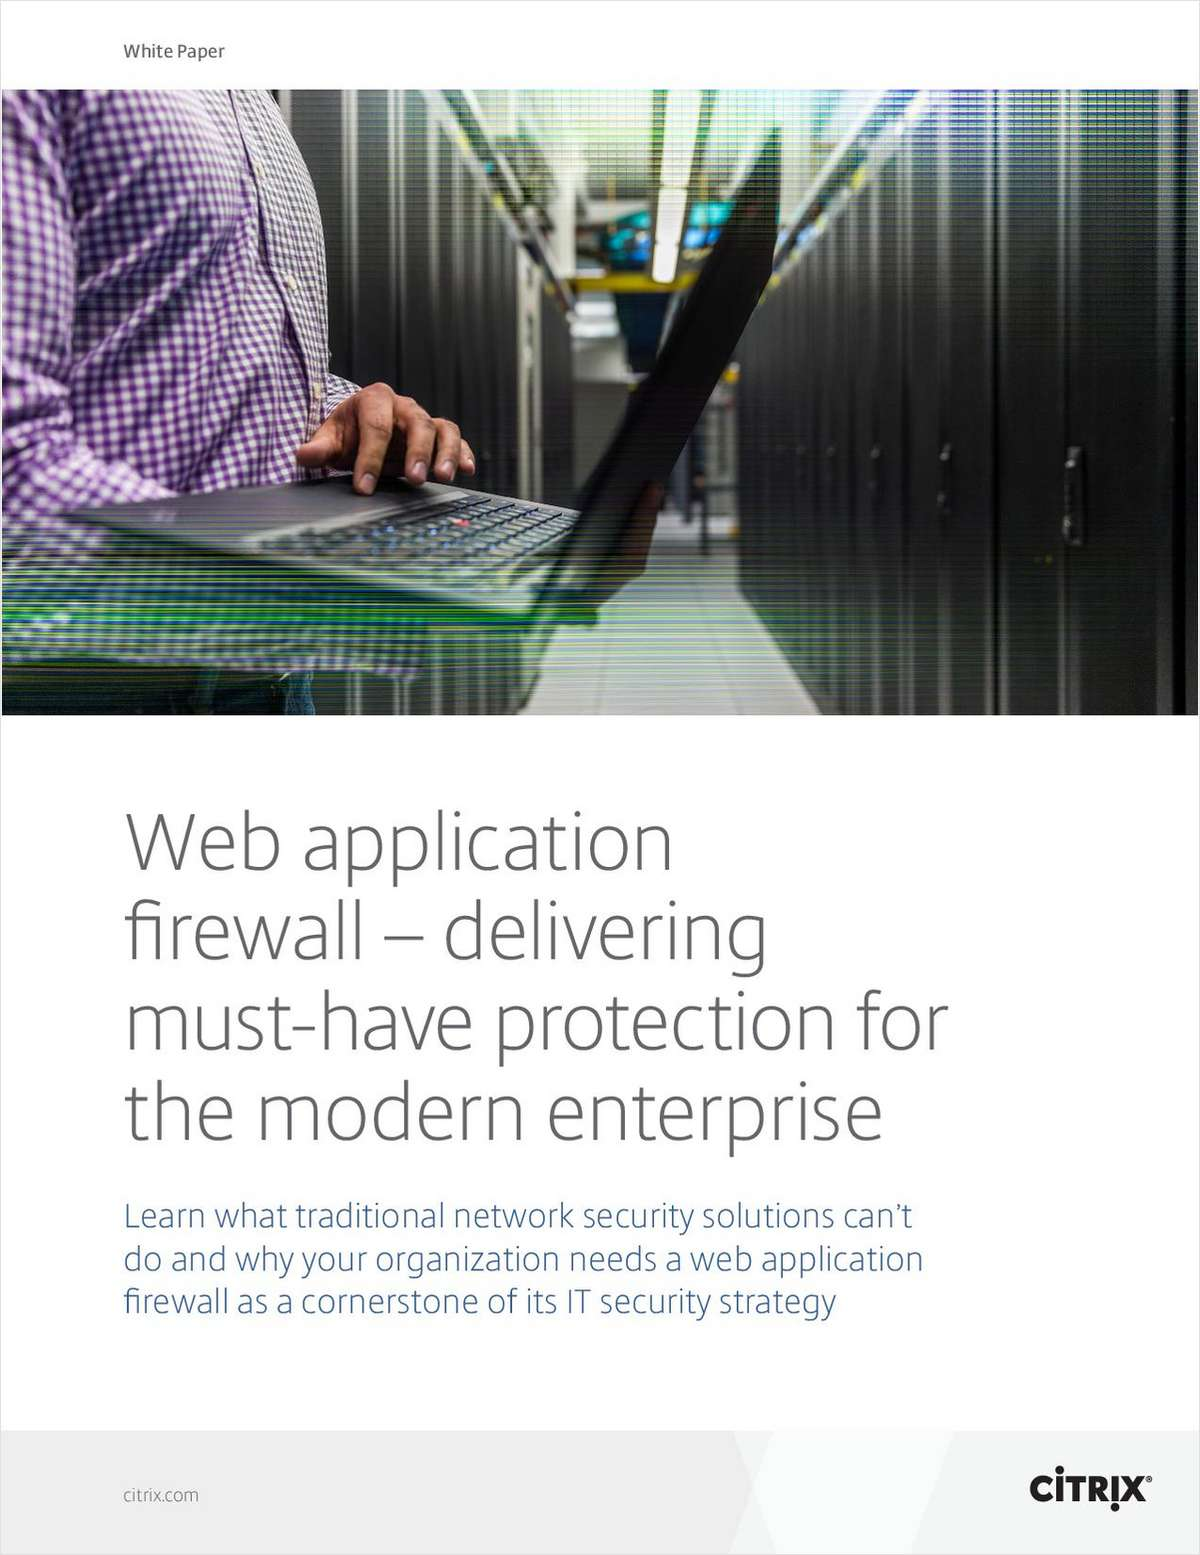 Web Application Firewall - Delivering Must-Have Protection for the Modern Enterprise